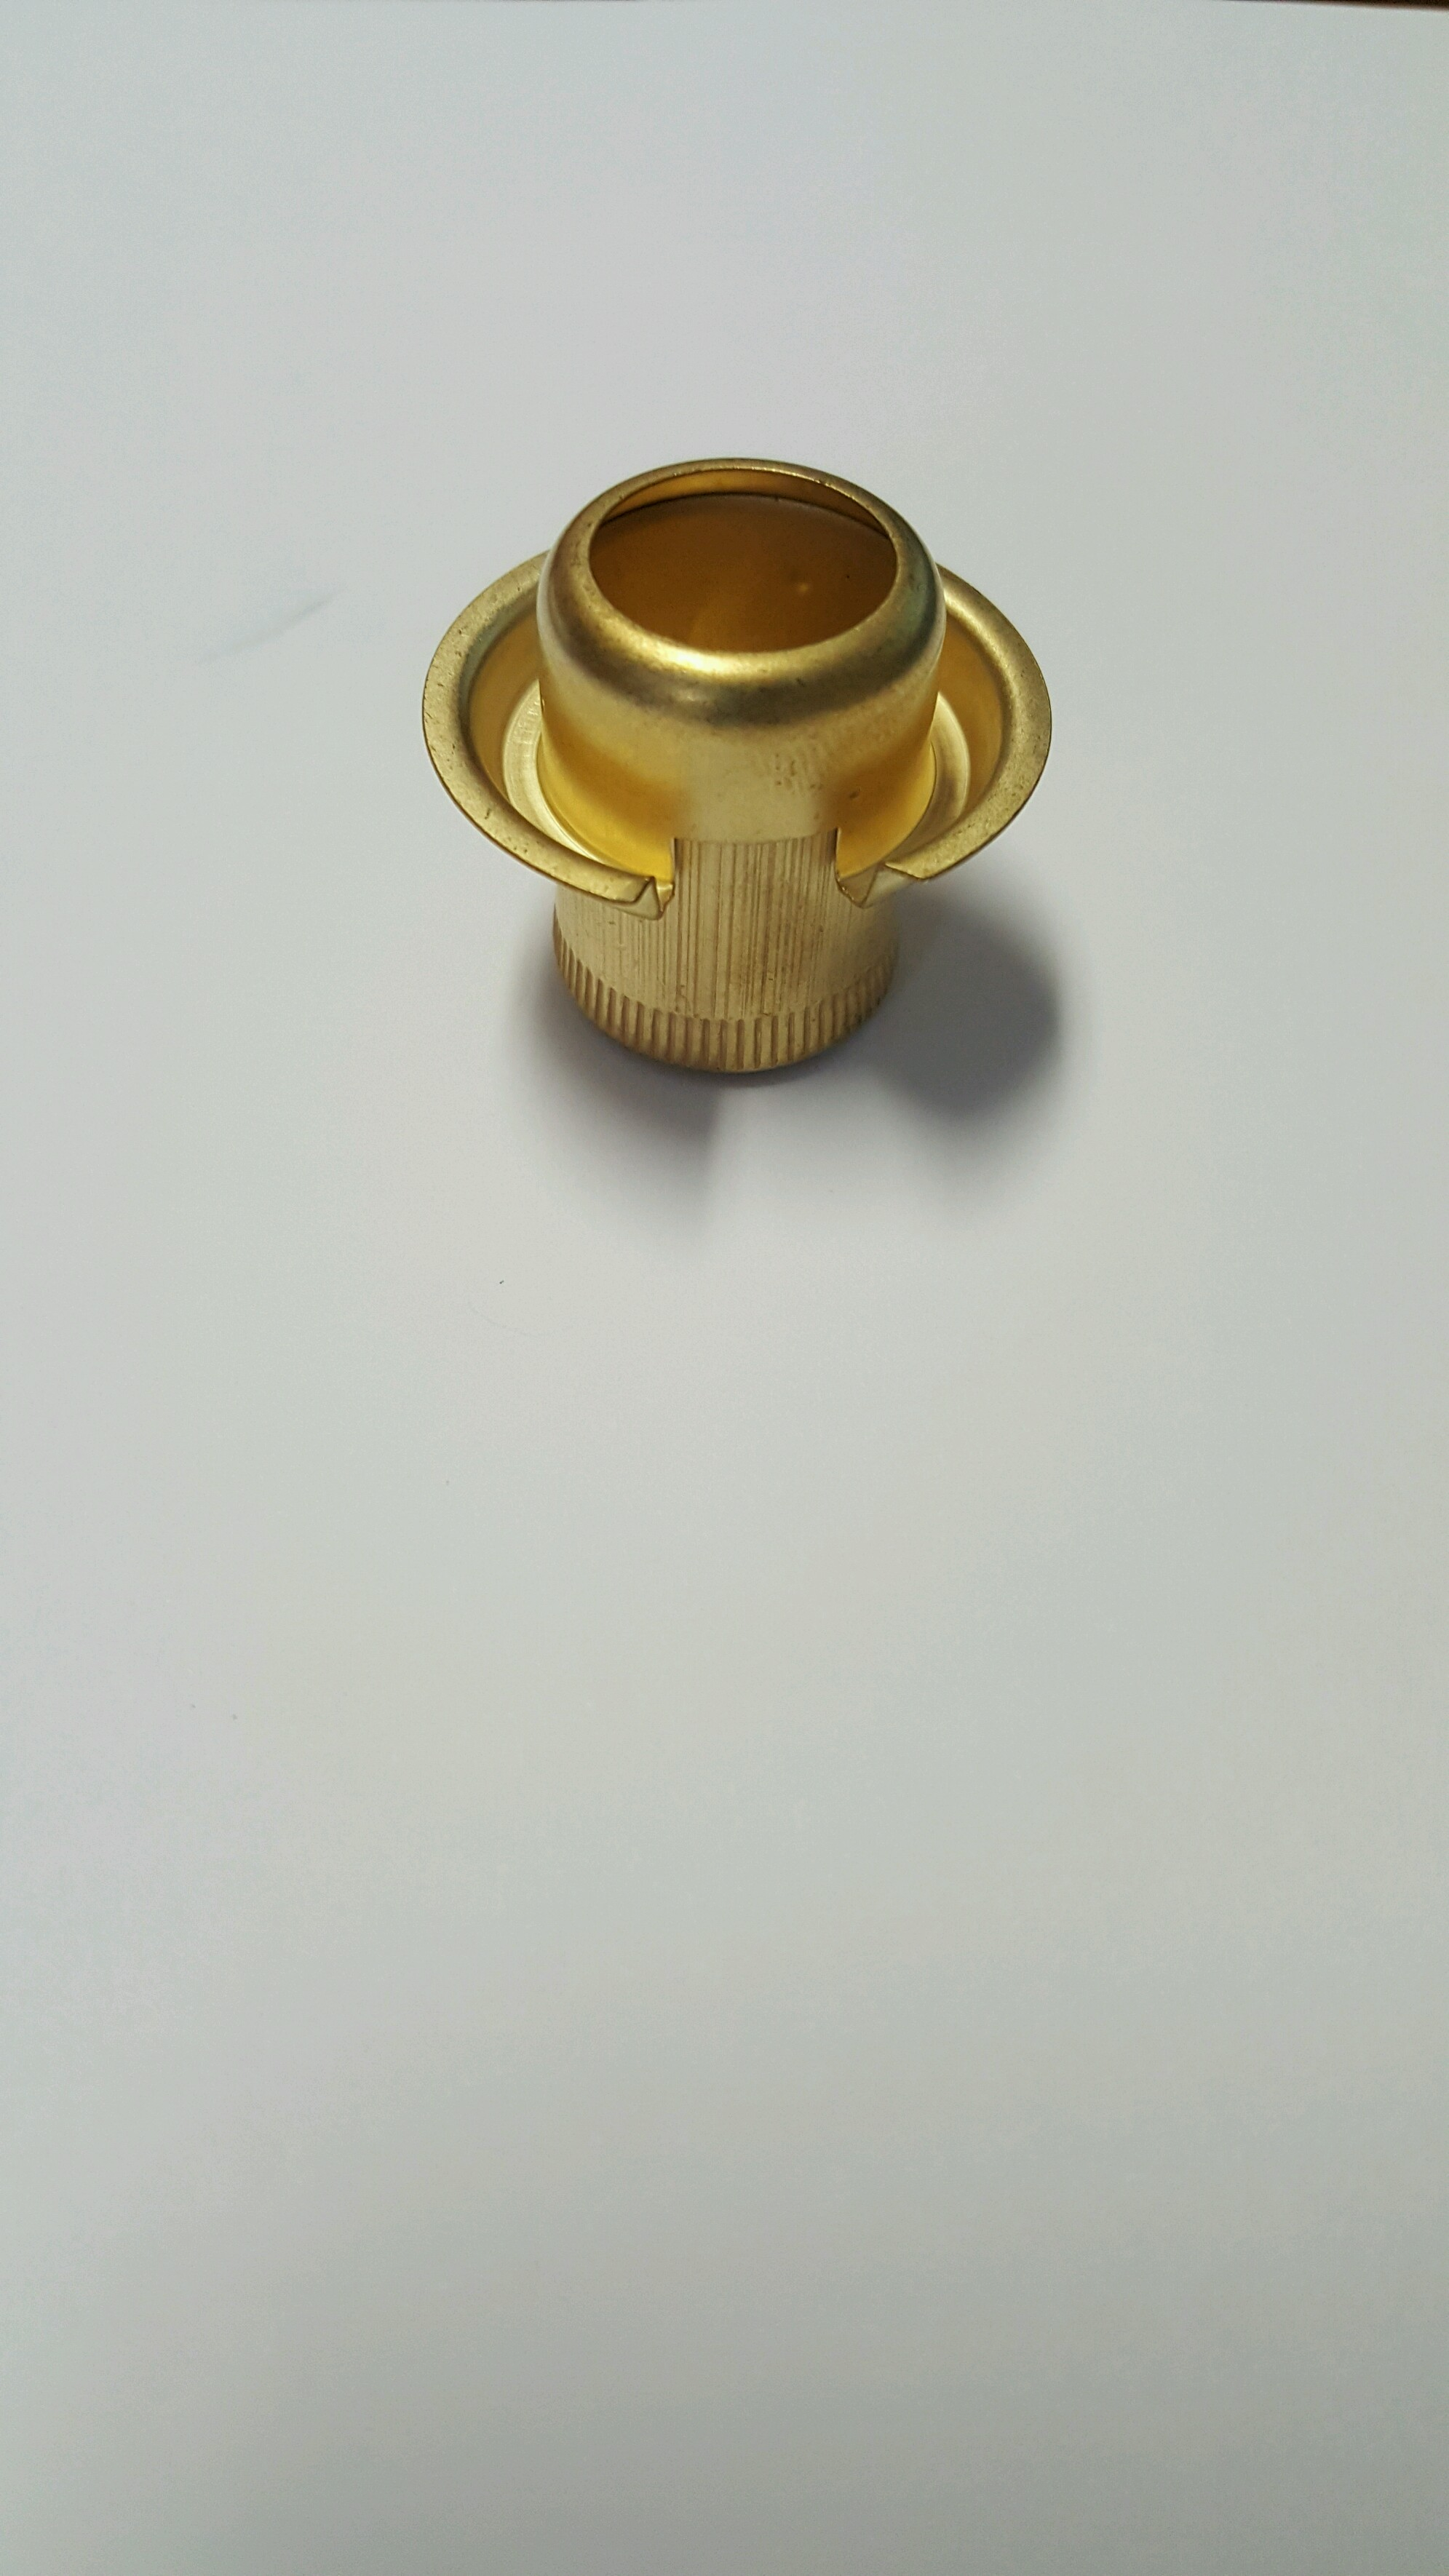 Aladdin brand wick trimmer 20810 bp lamp supply r111 works with all aladdin burners produced with 1 wicks models 1 thru 23 aloadofball Image collections